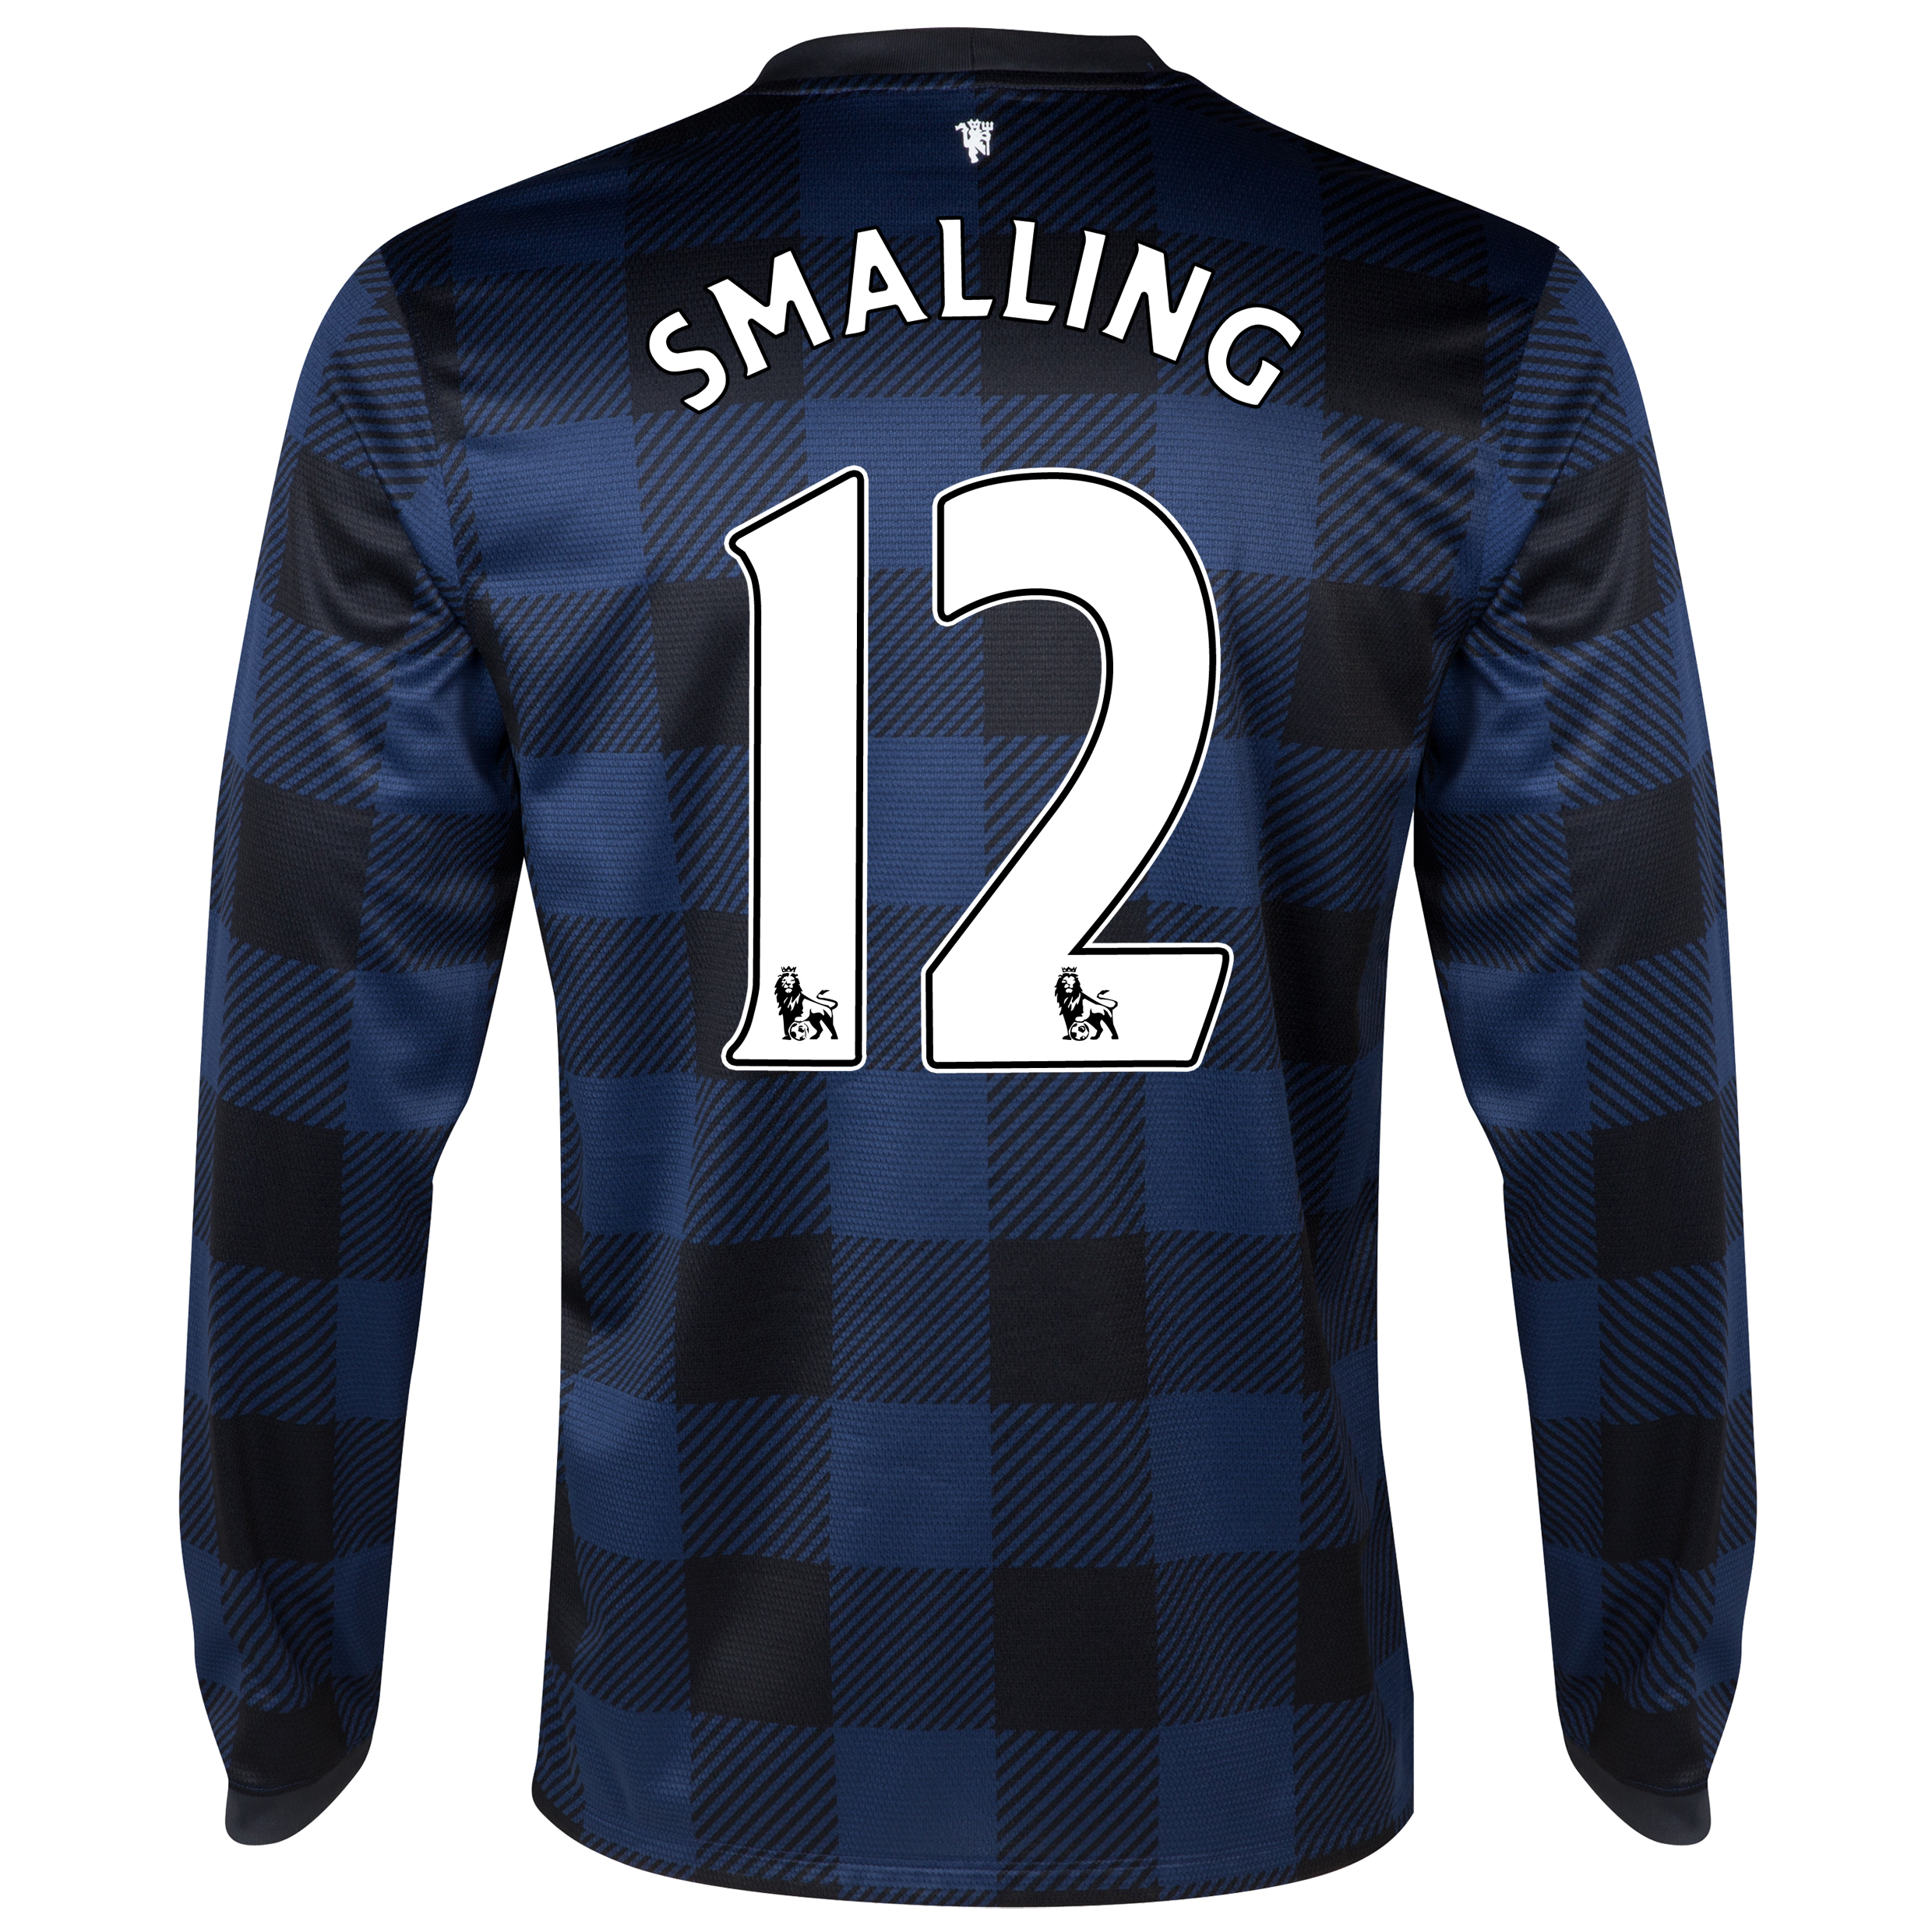 Manchester United Away Shirt 2013/14 - Long Sleeved - Kids with Smalling 12 printing